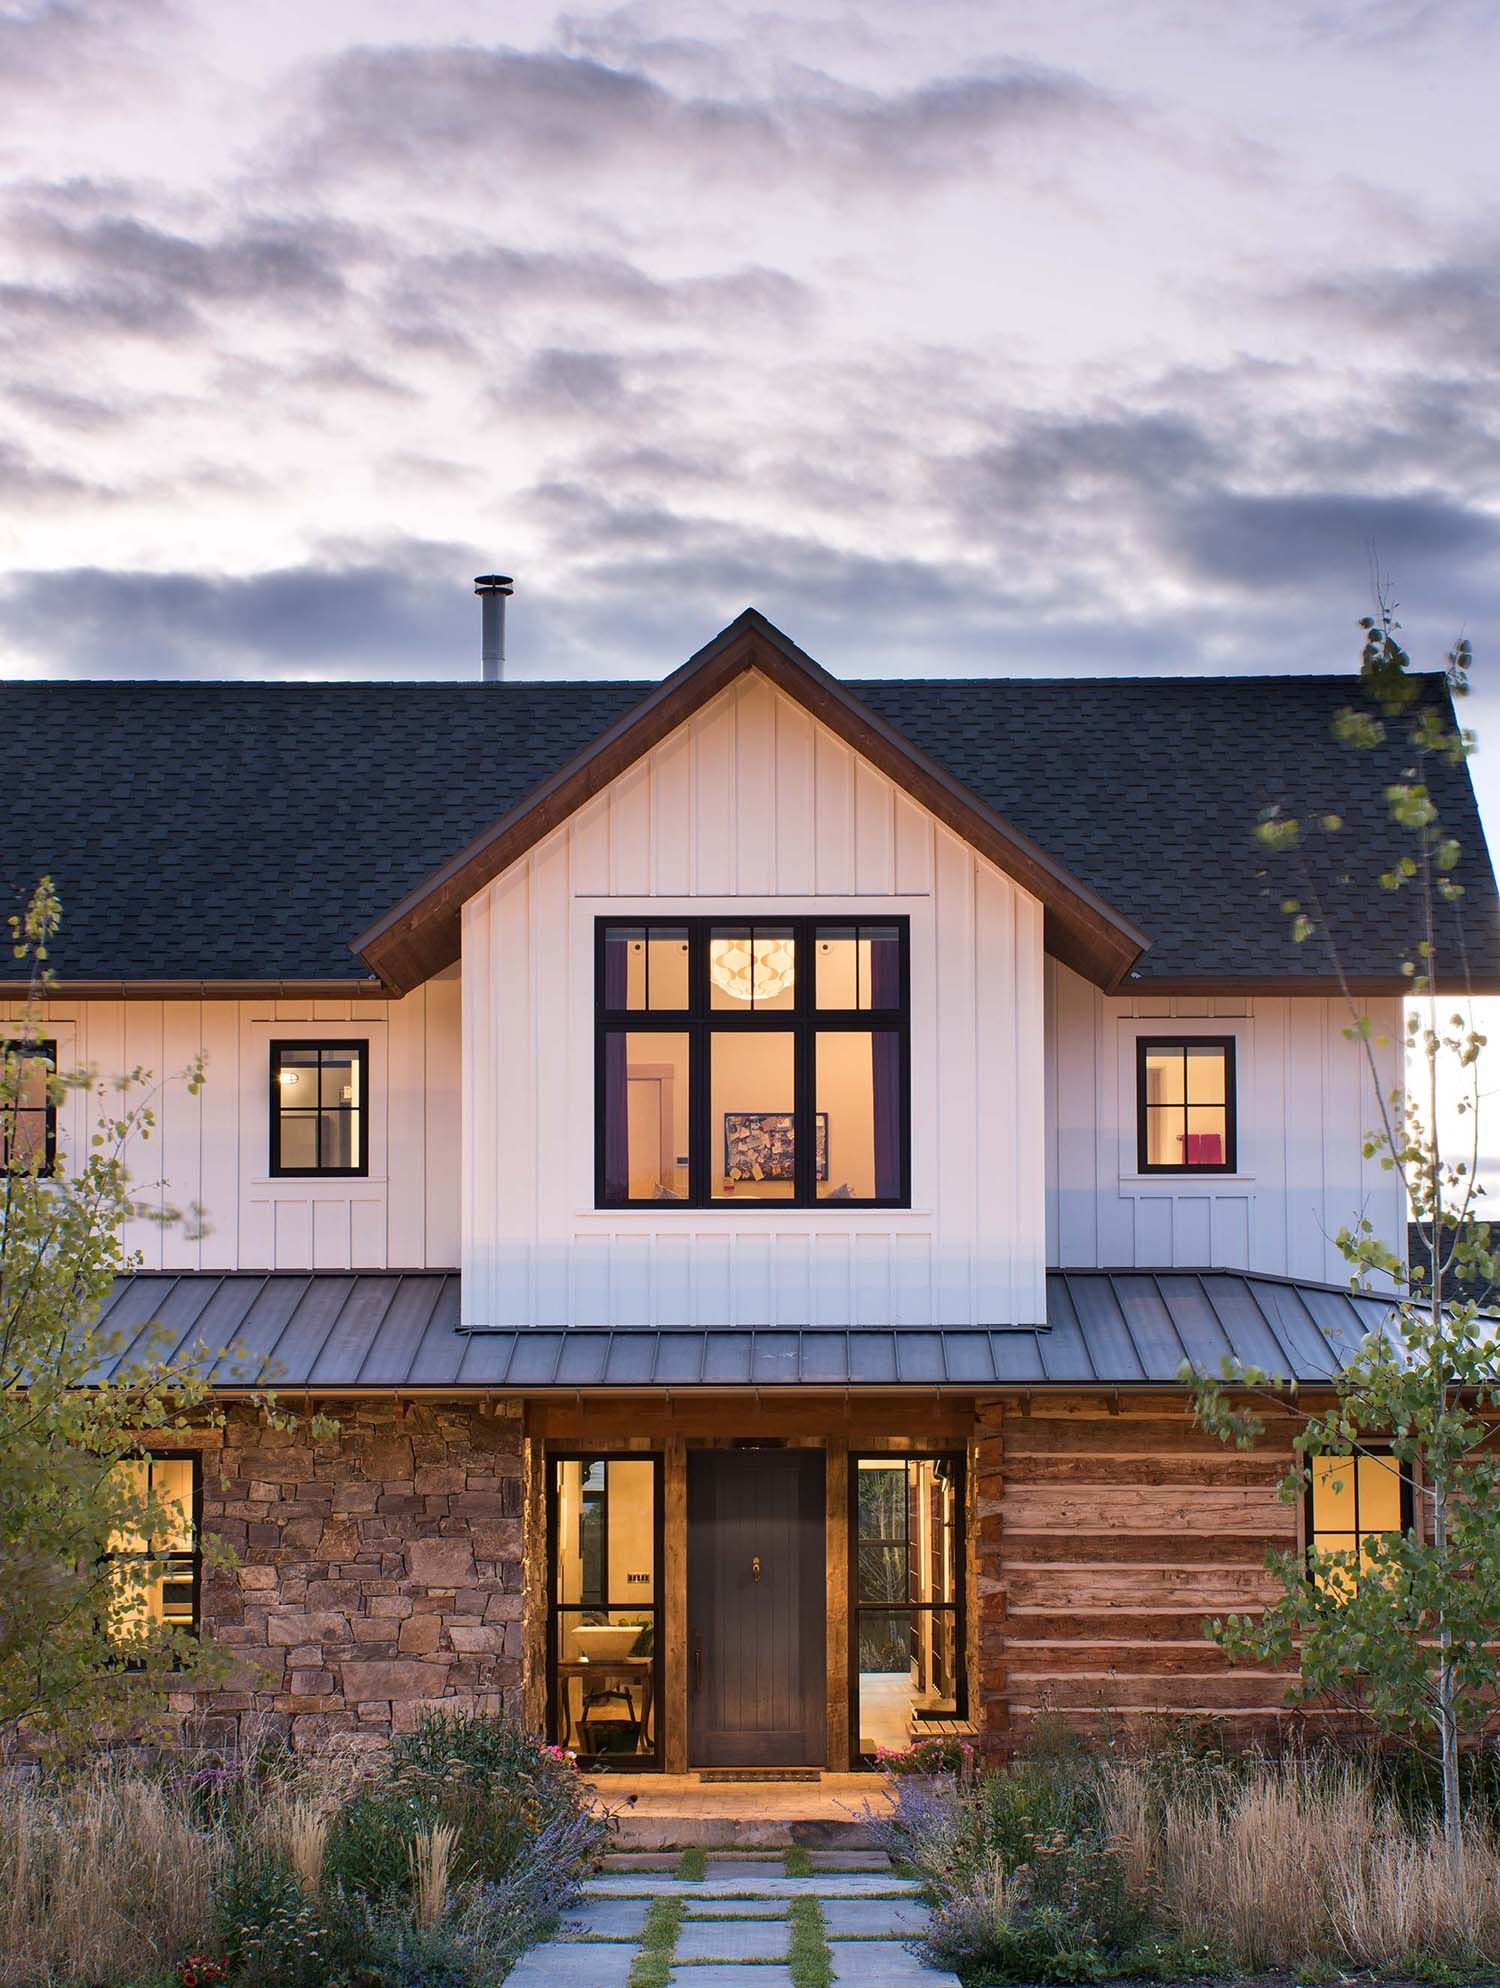 Farmhouse Style Residence Embraces Warm And Inviting Design In Montana Modern Farmhouse Exterior House Exterior Farmhouse Design